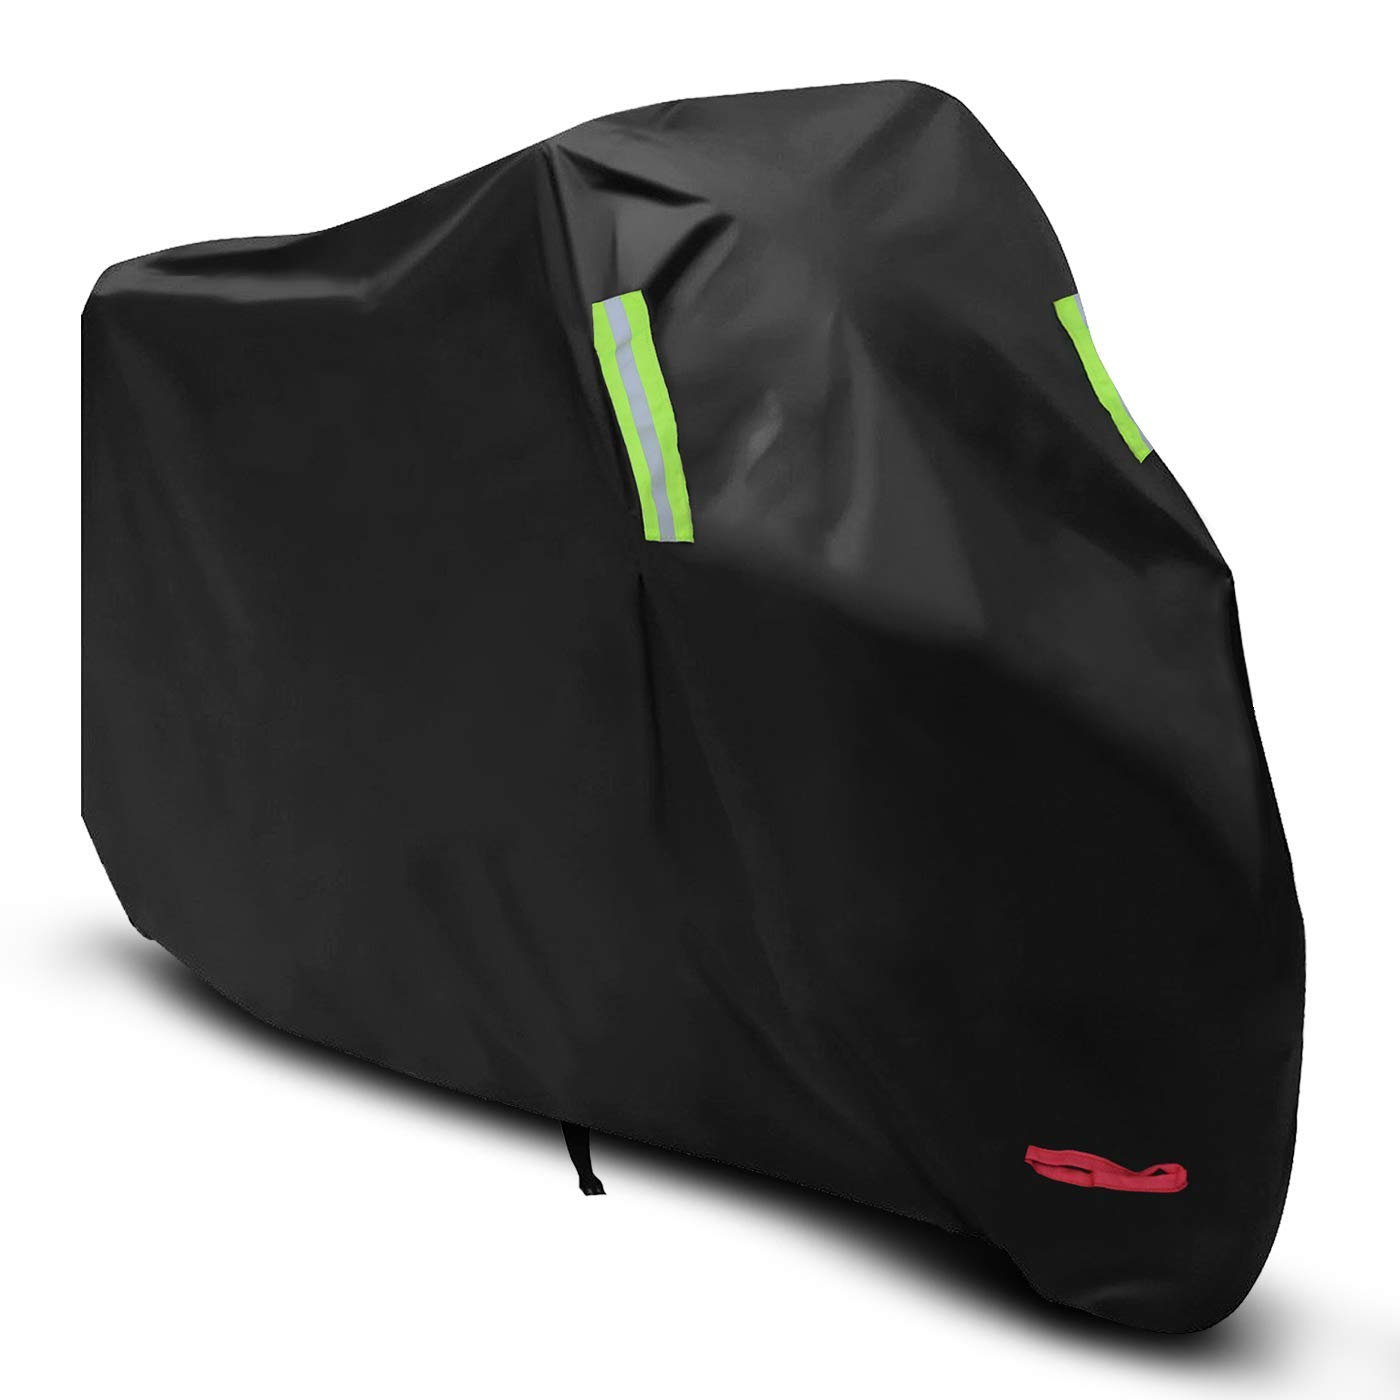 Homai Motorcycle Cover, Waterproof Durable & Tearproof All Weather Outdoor Protection Fits up to 104 inches XXL Motorcycles Like Honda, Yamaha, Suzuki, Harley and More by Homai